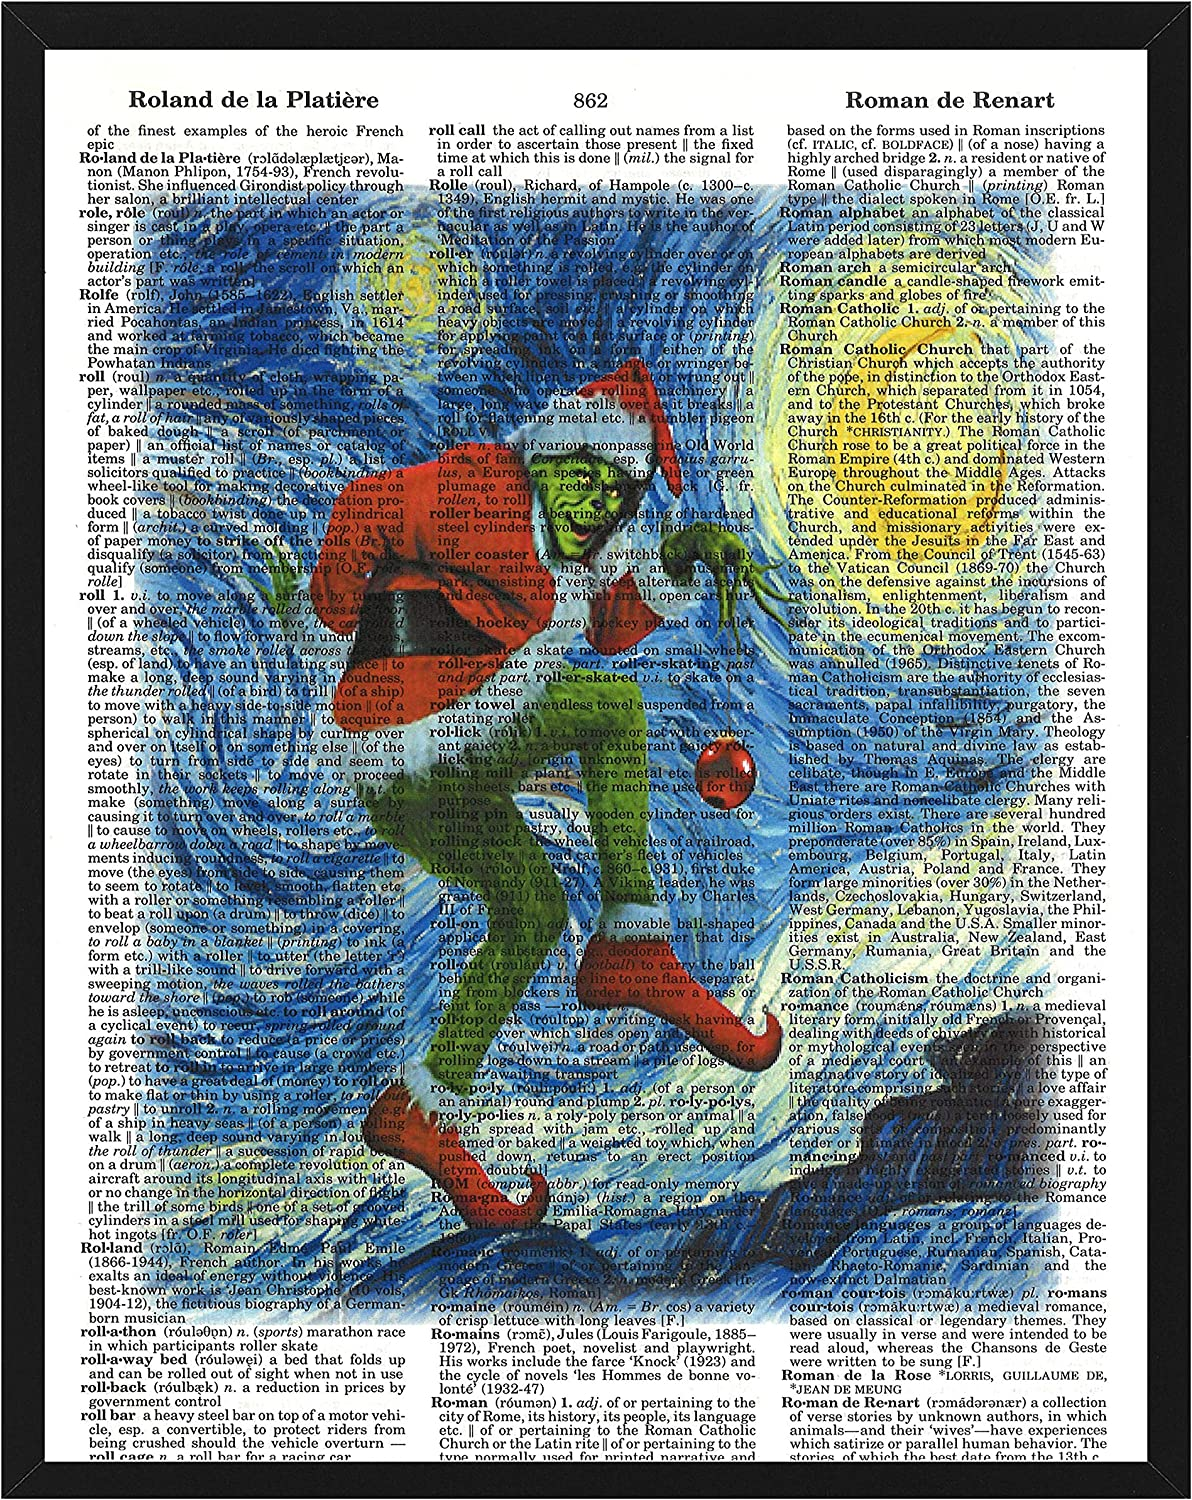 Christmas Wall Decor Featuring The Grinch in Van Gogh's Starry Night Christmas Dictionary Art Print 8 x 10 Inch